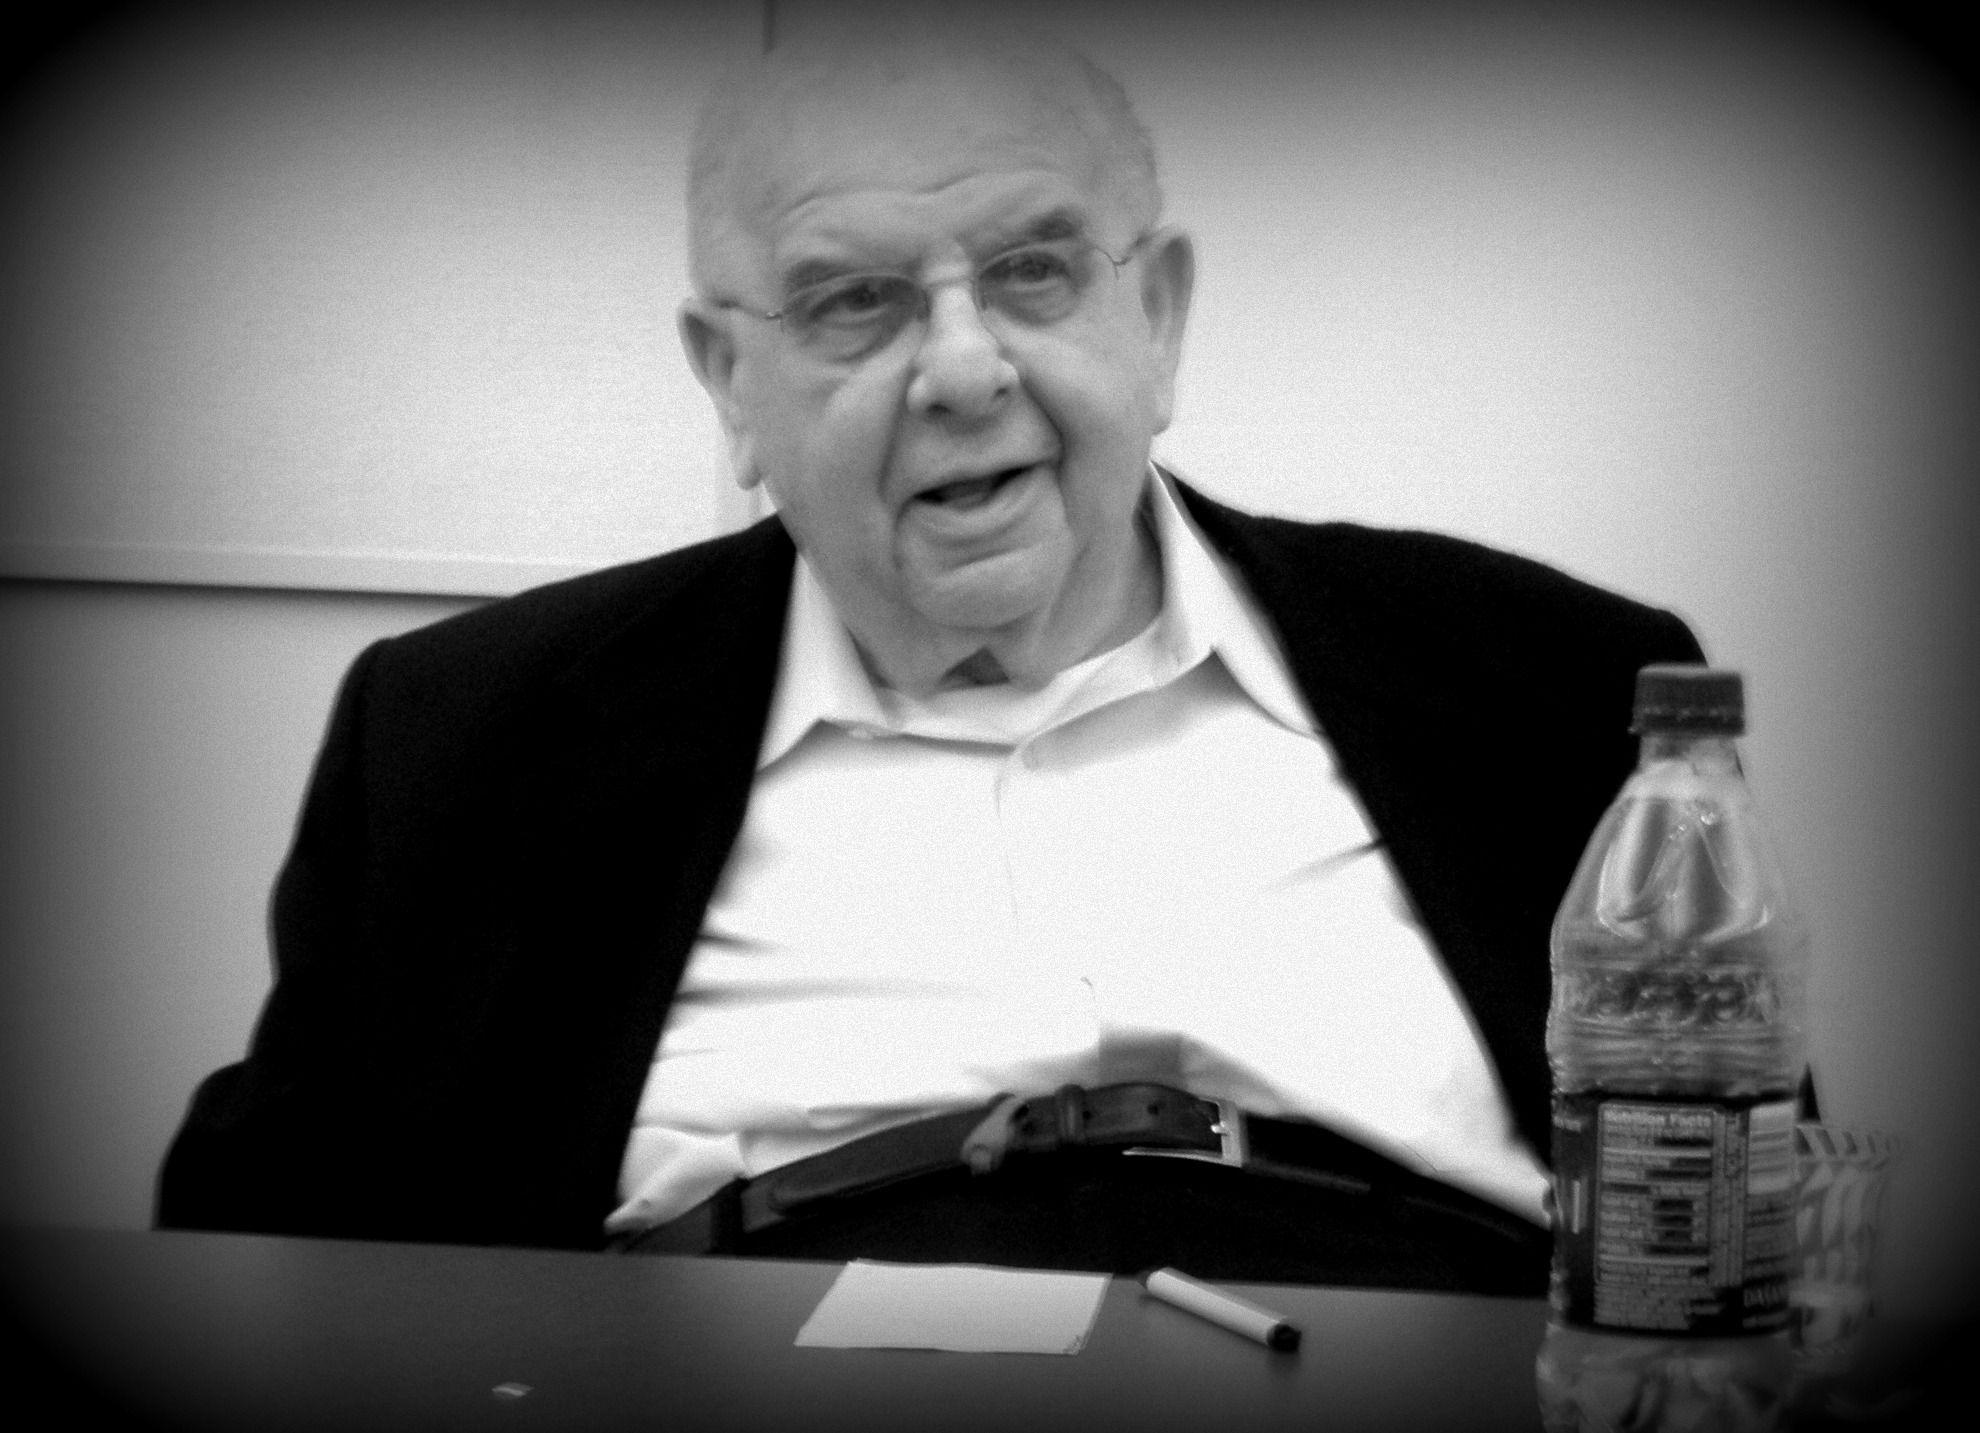 Joe Diamond - A Holocaust Survivor Story